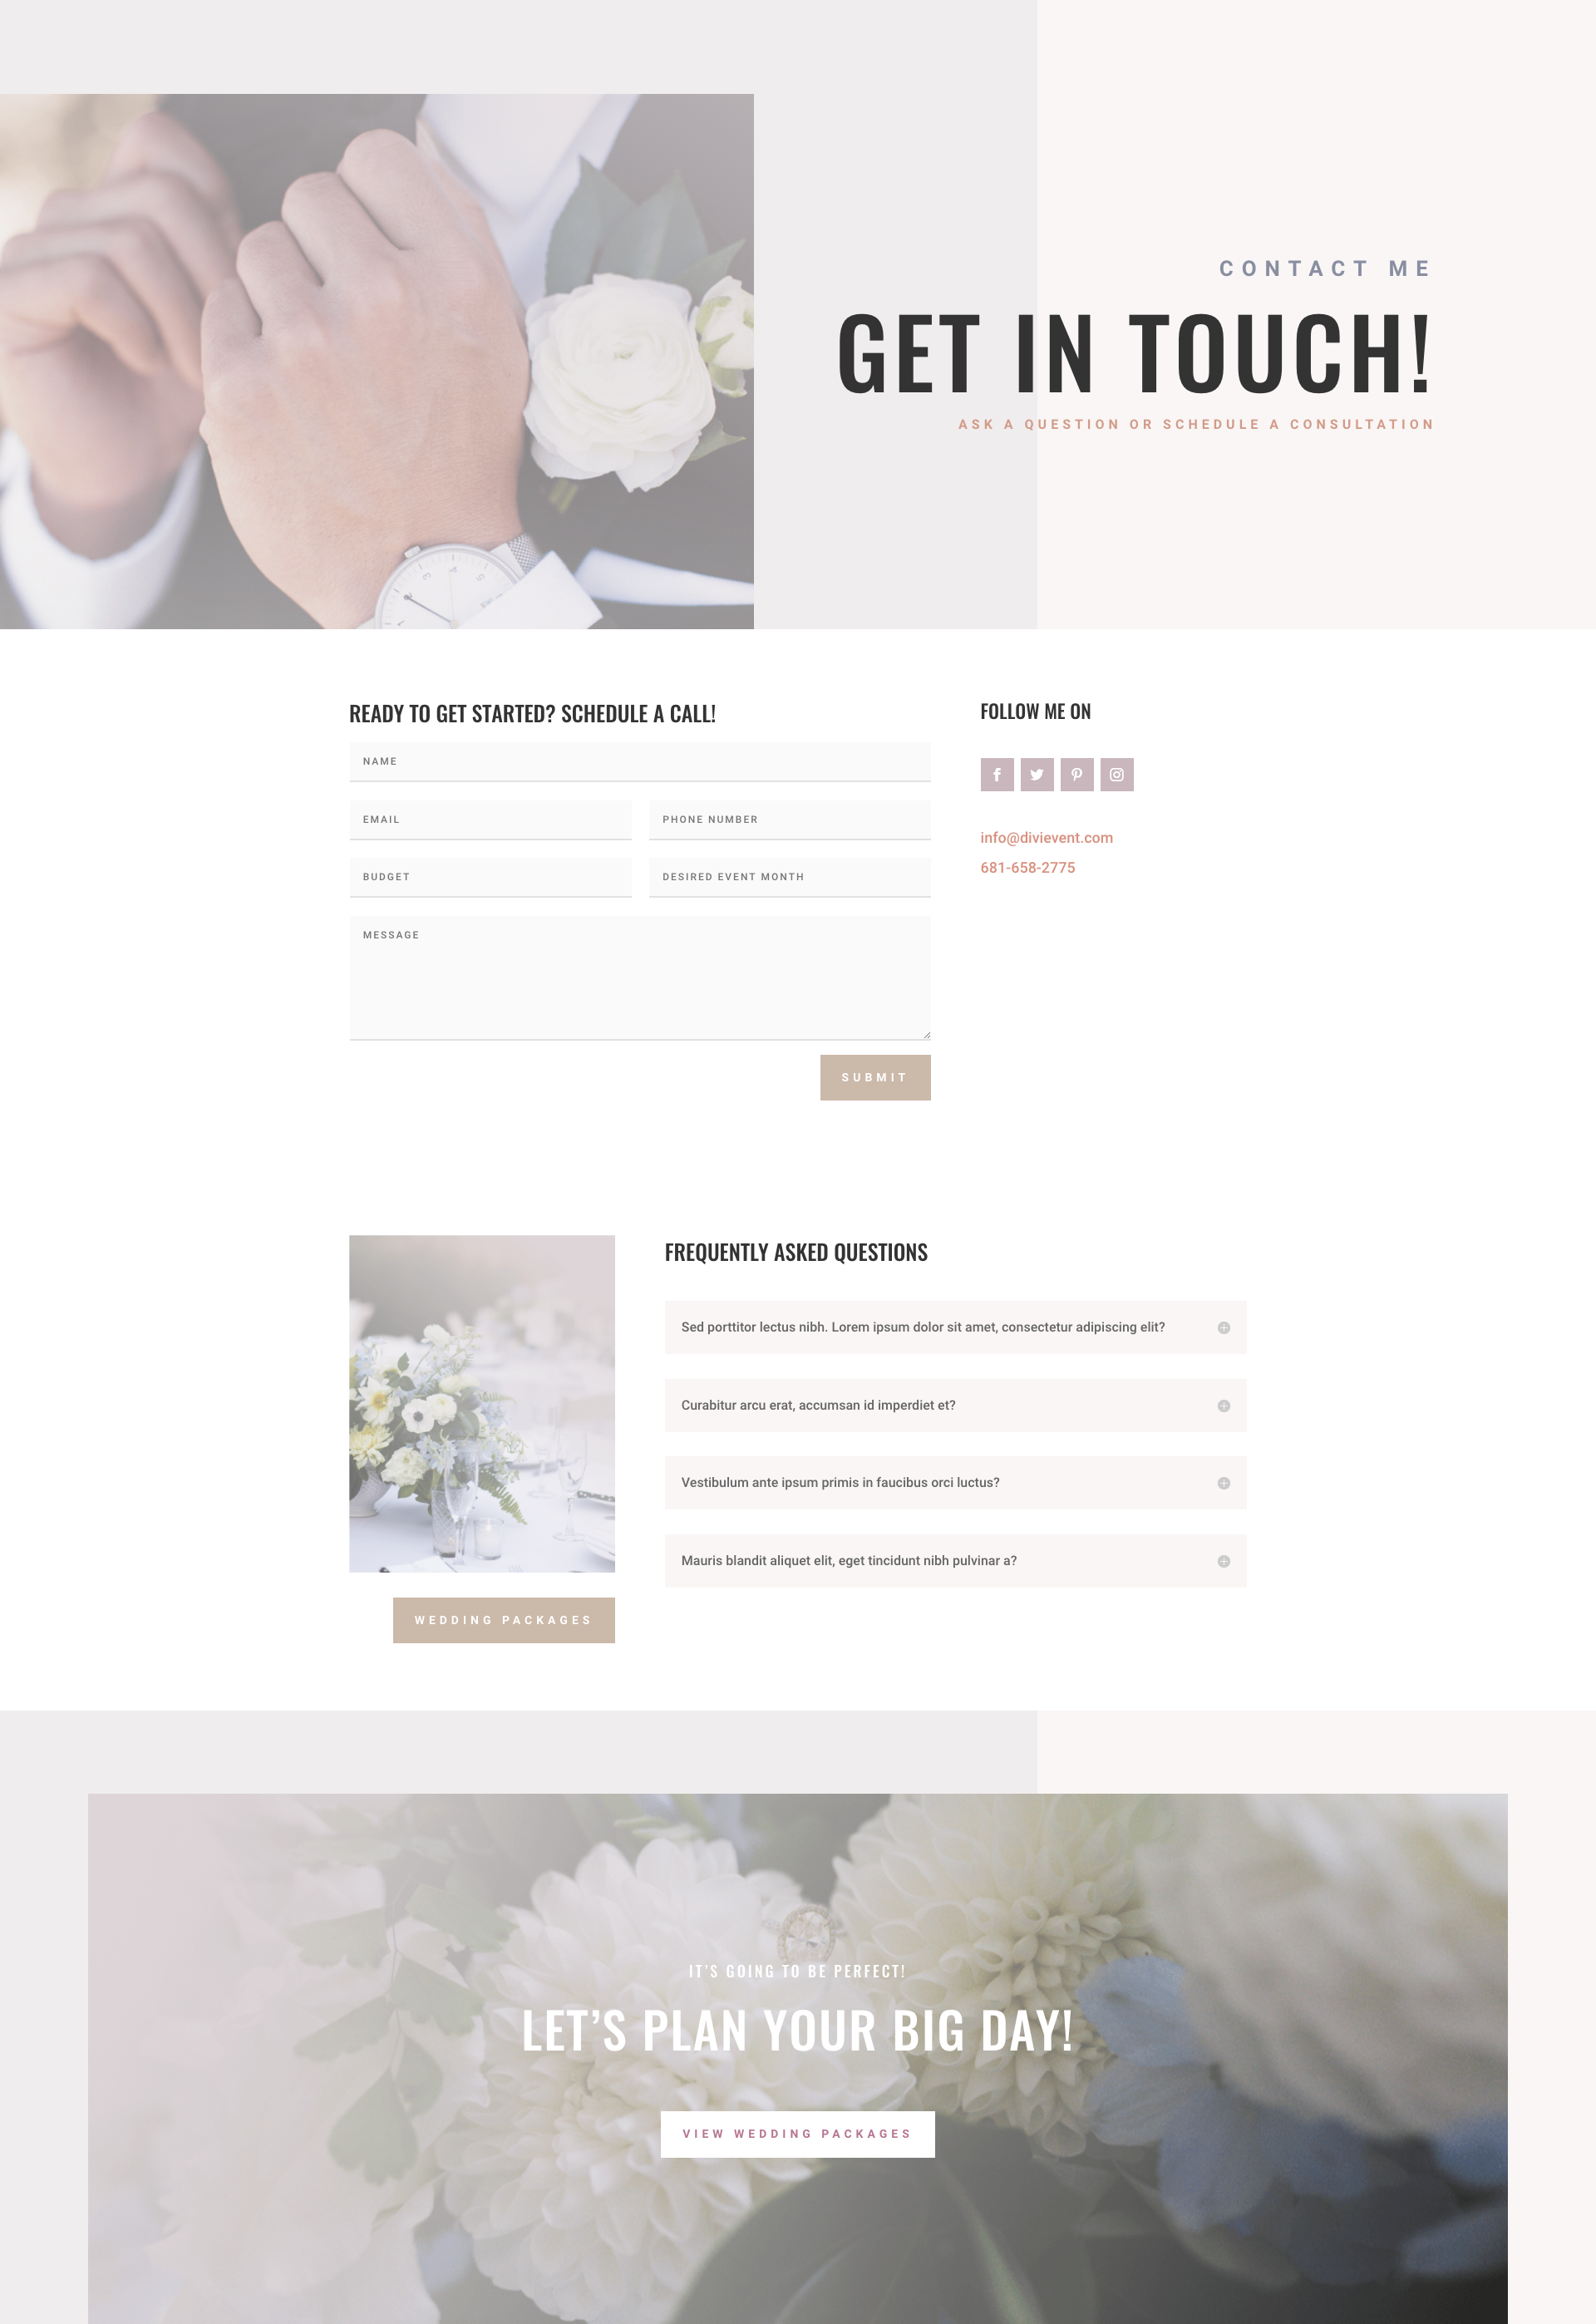 dribbble wedding planner contact page png by ishtiaq khan parag